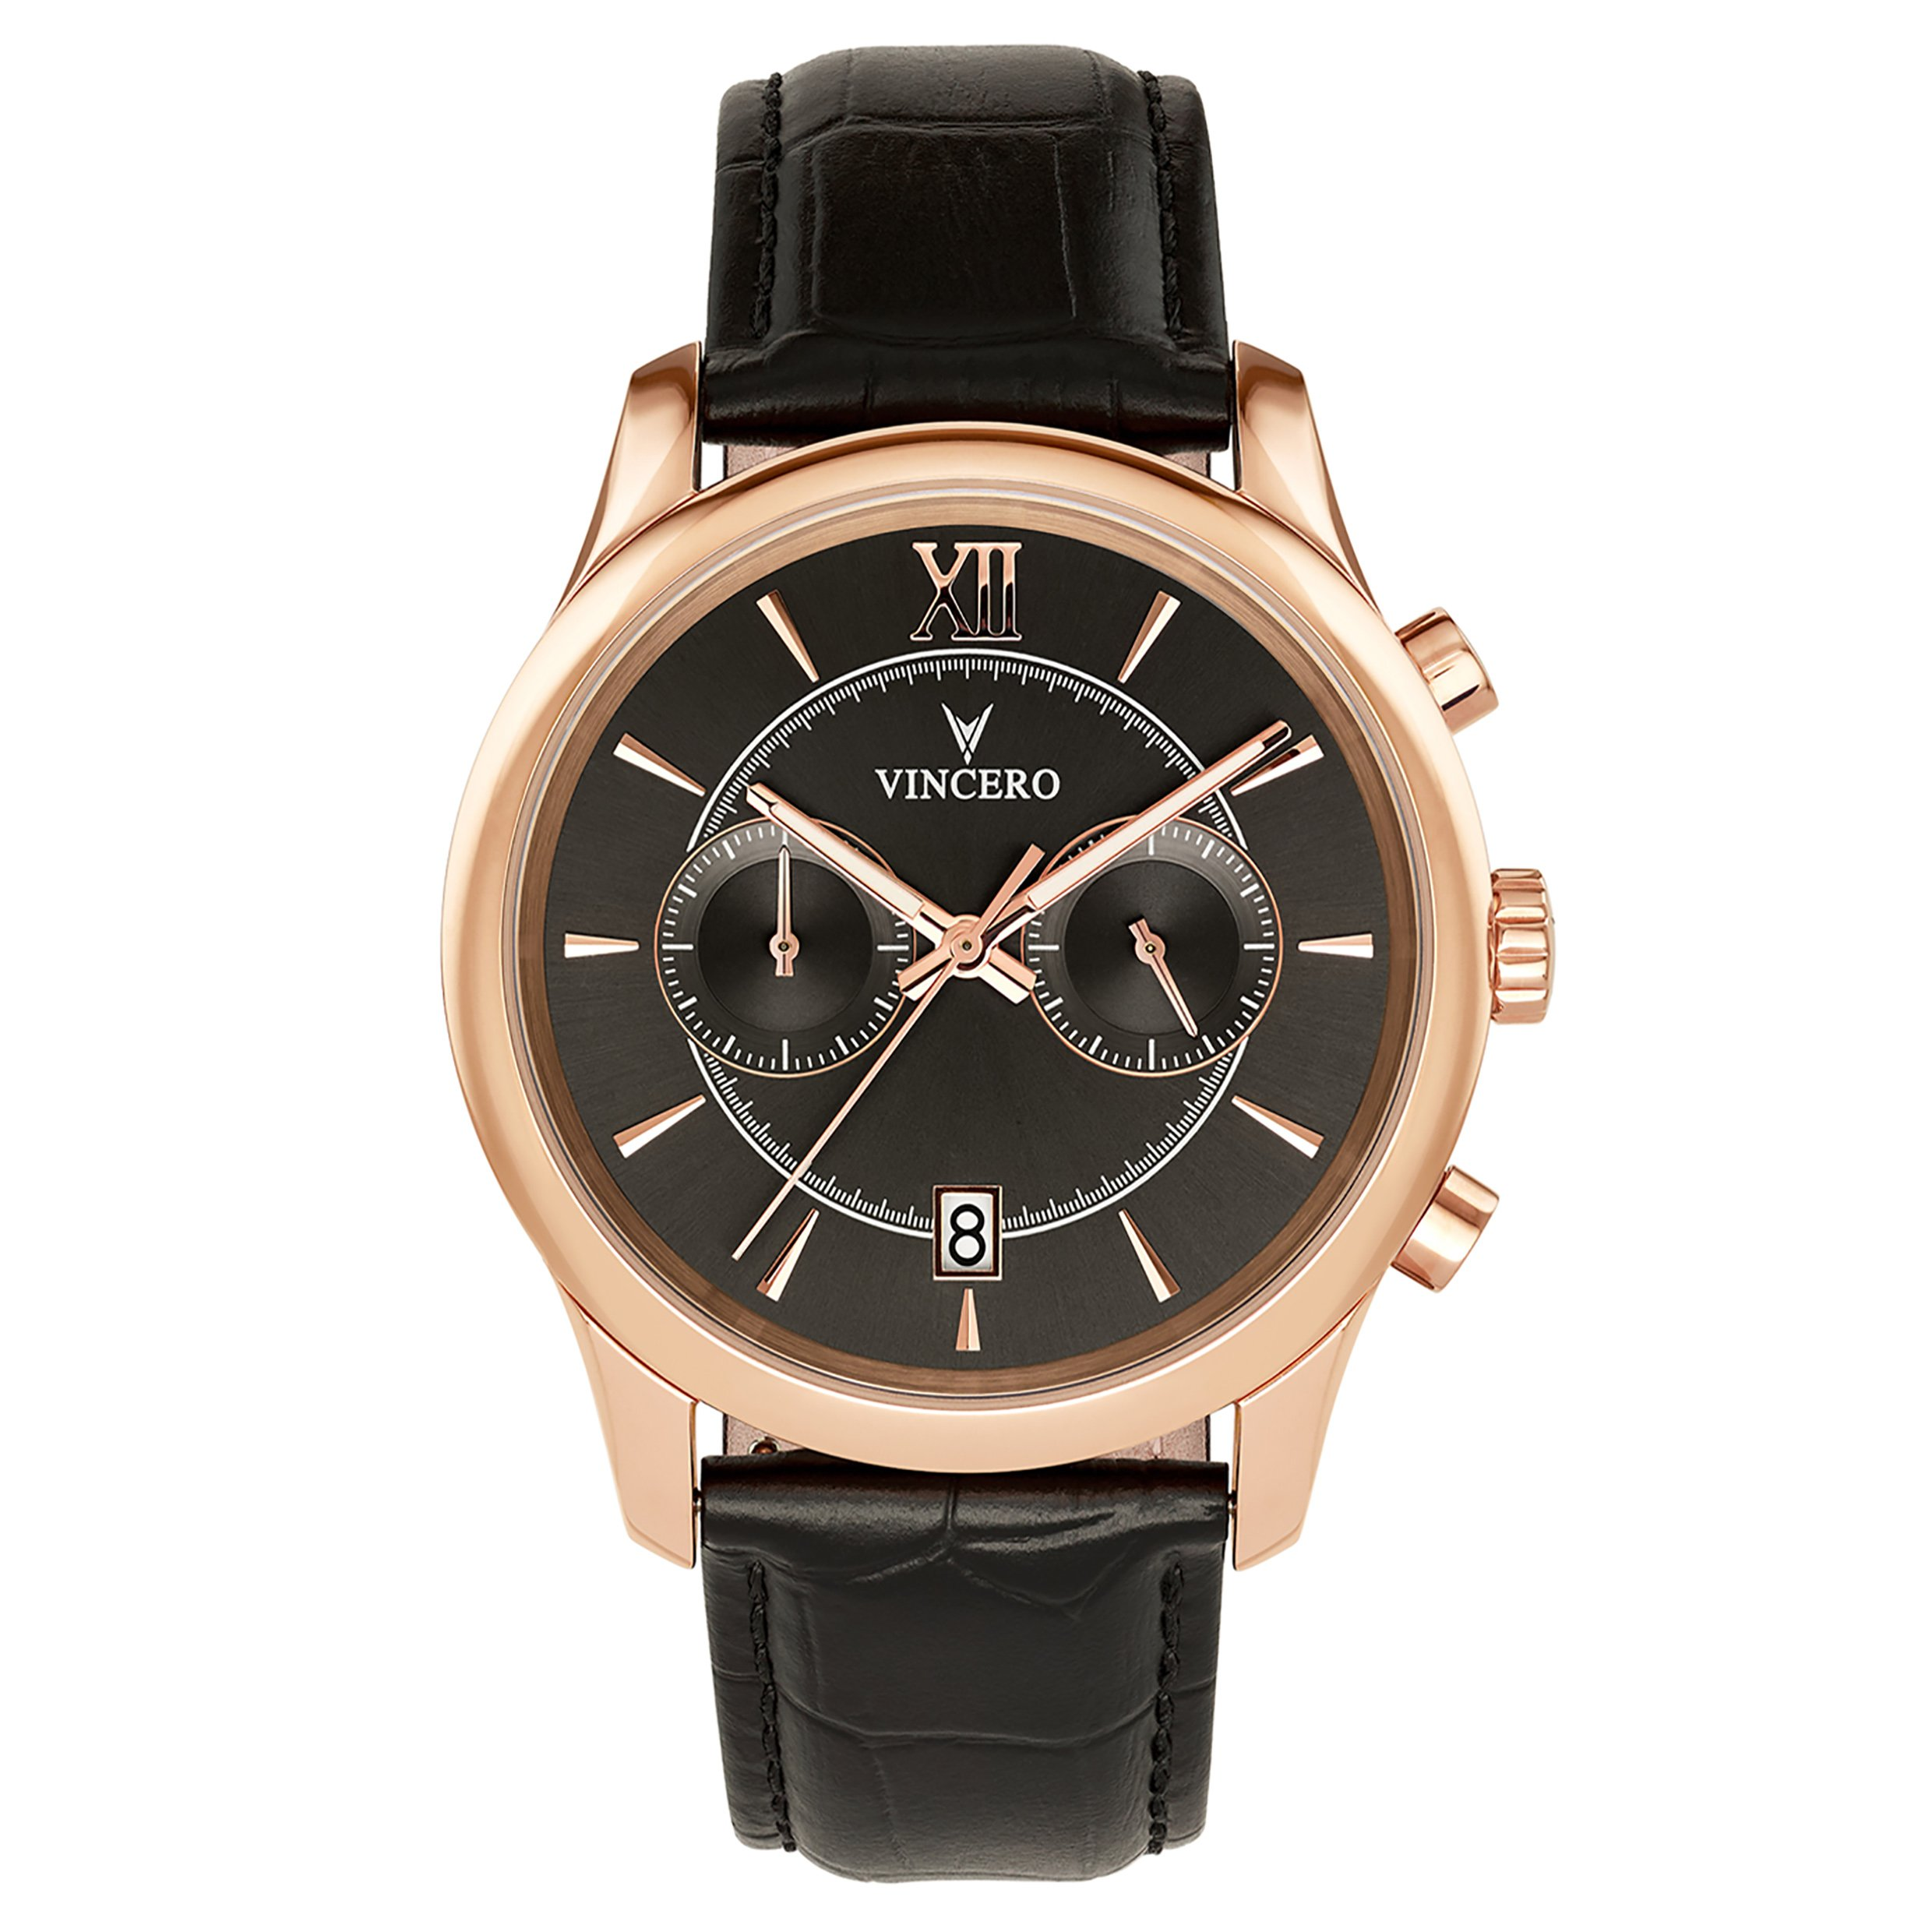 Vincero Luxury Men's Bellwether Wrist Watch — Rose Gold with Black Leather Watch Band — 43mm Chronograph Watch — Japanese Quartz Movement